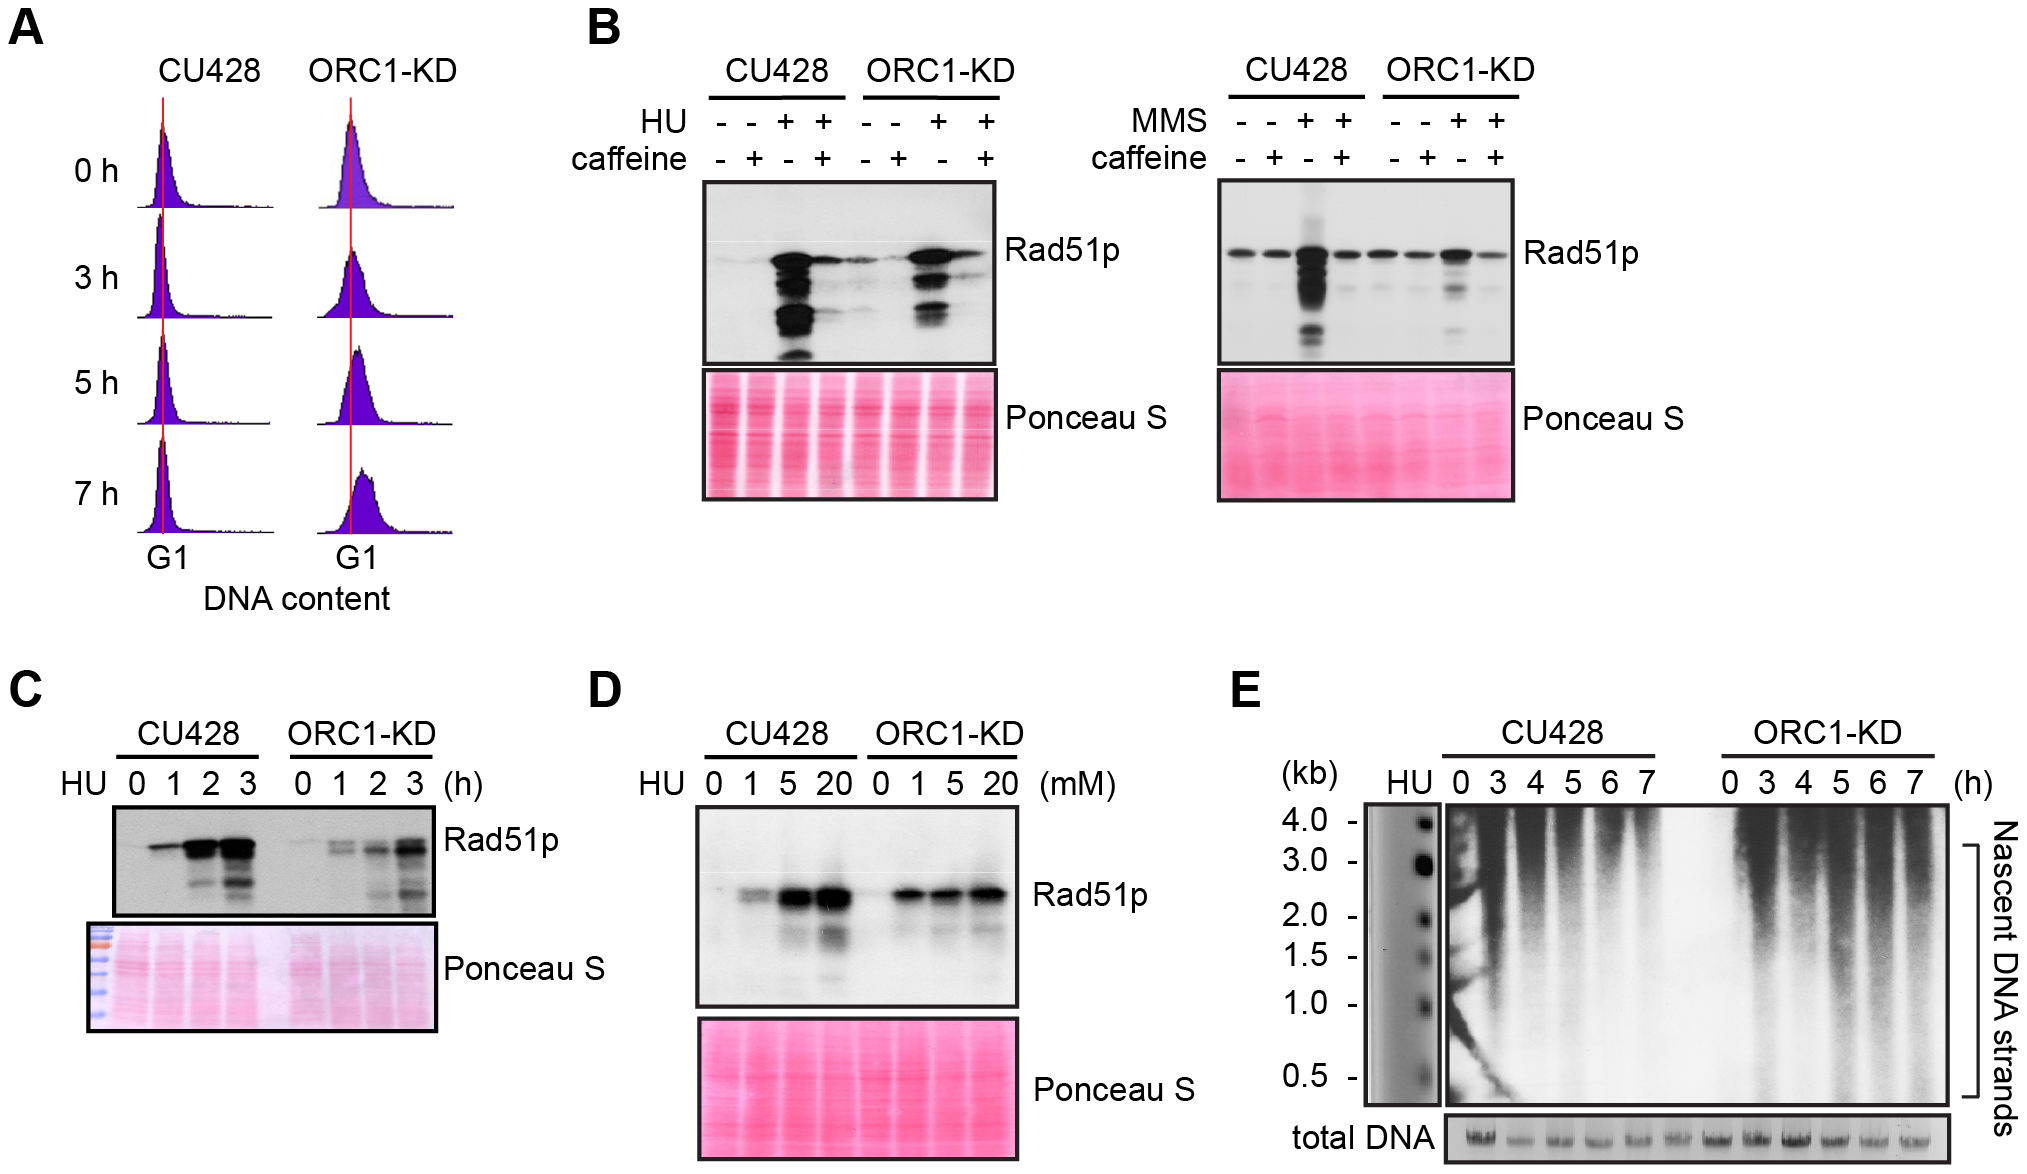 Abrogated intra-S phase checkpoint response in ORC1 knockdown cells.